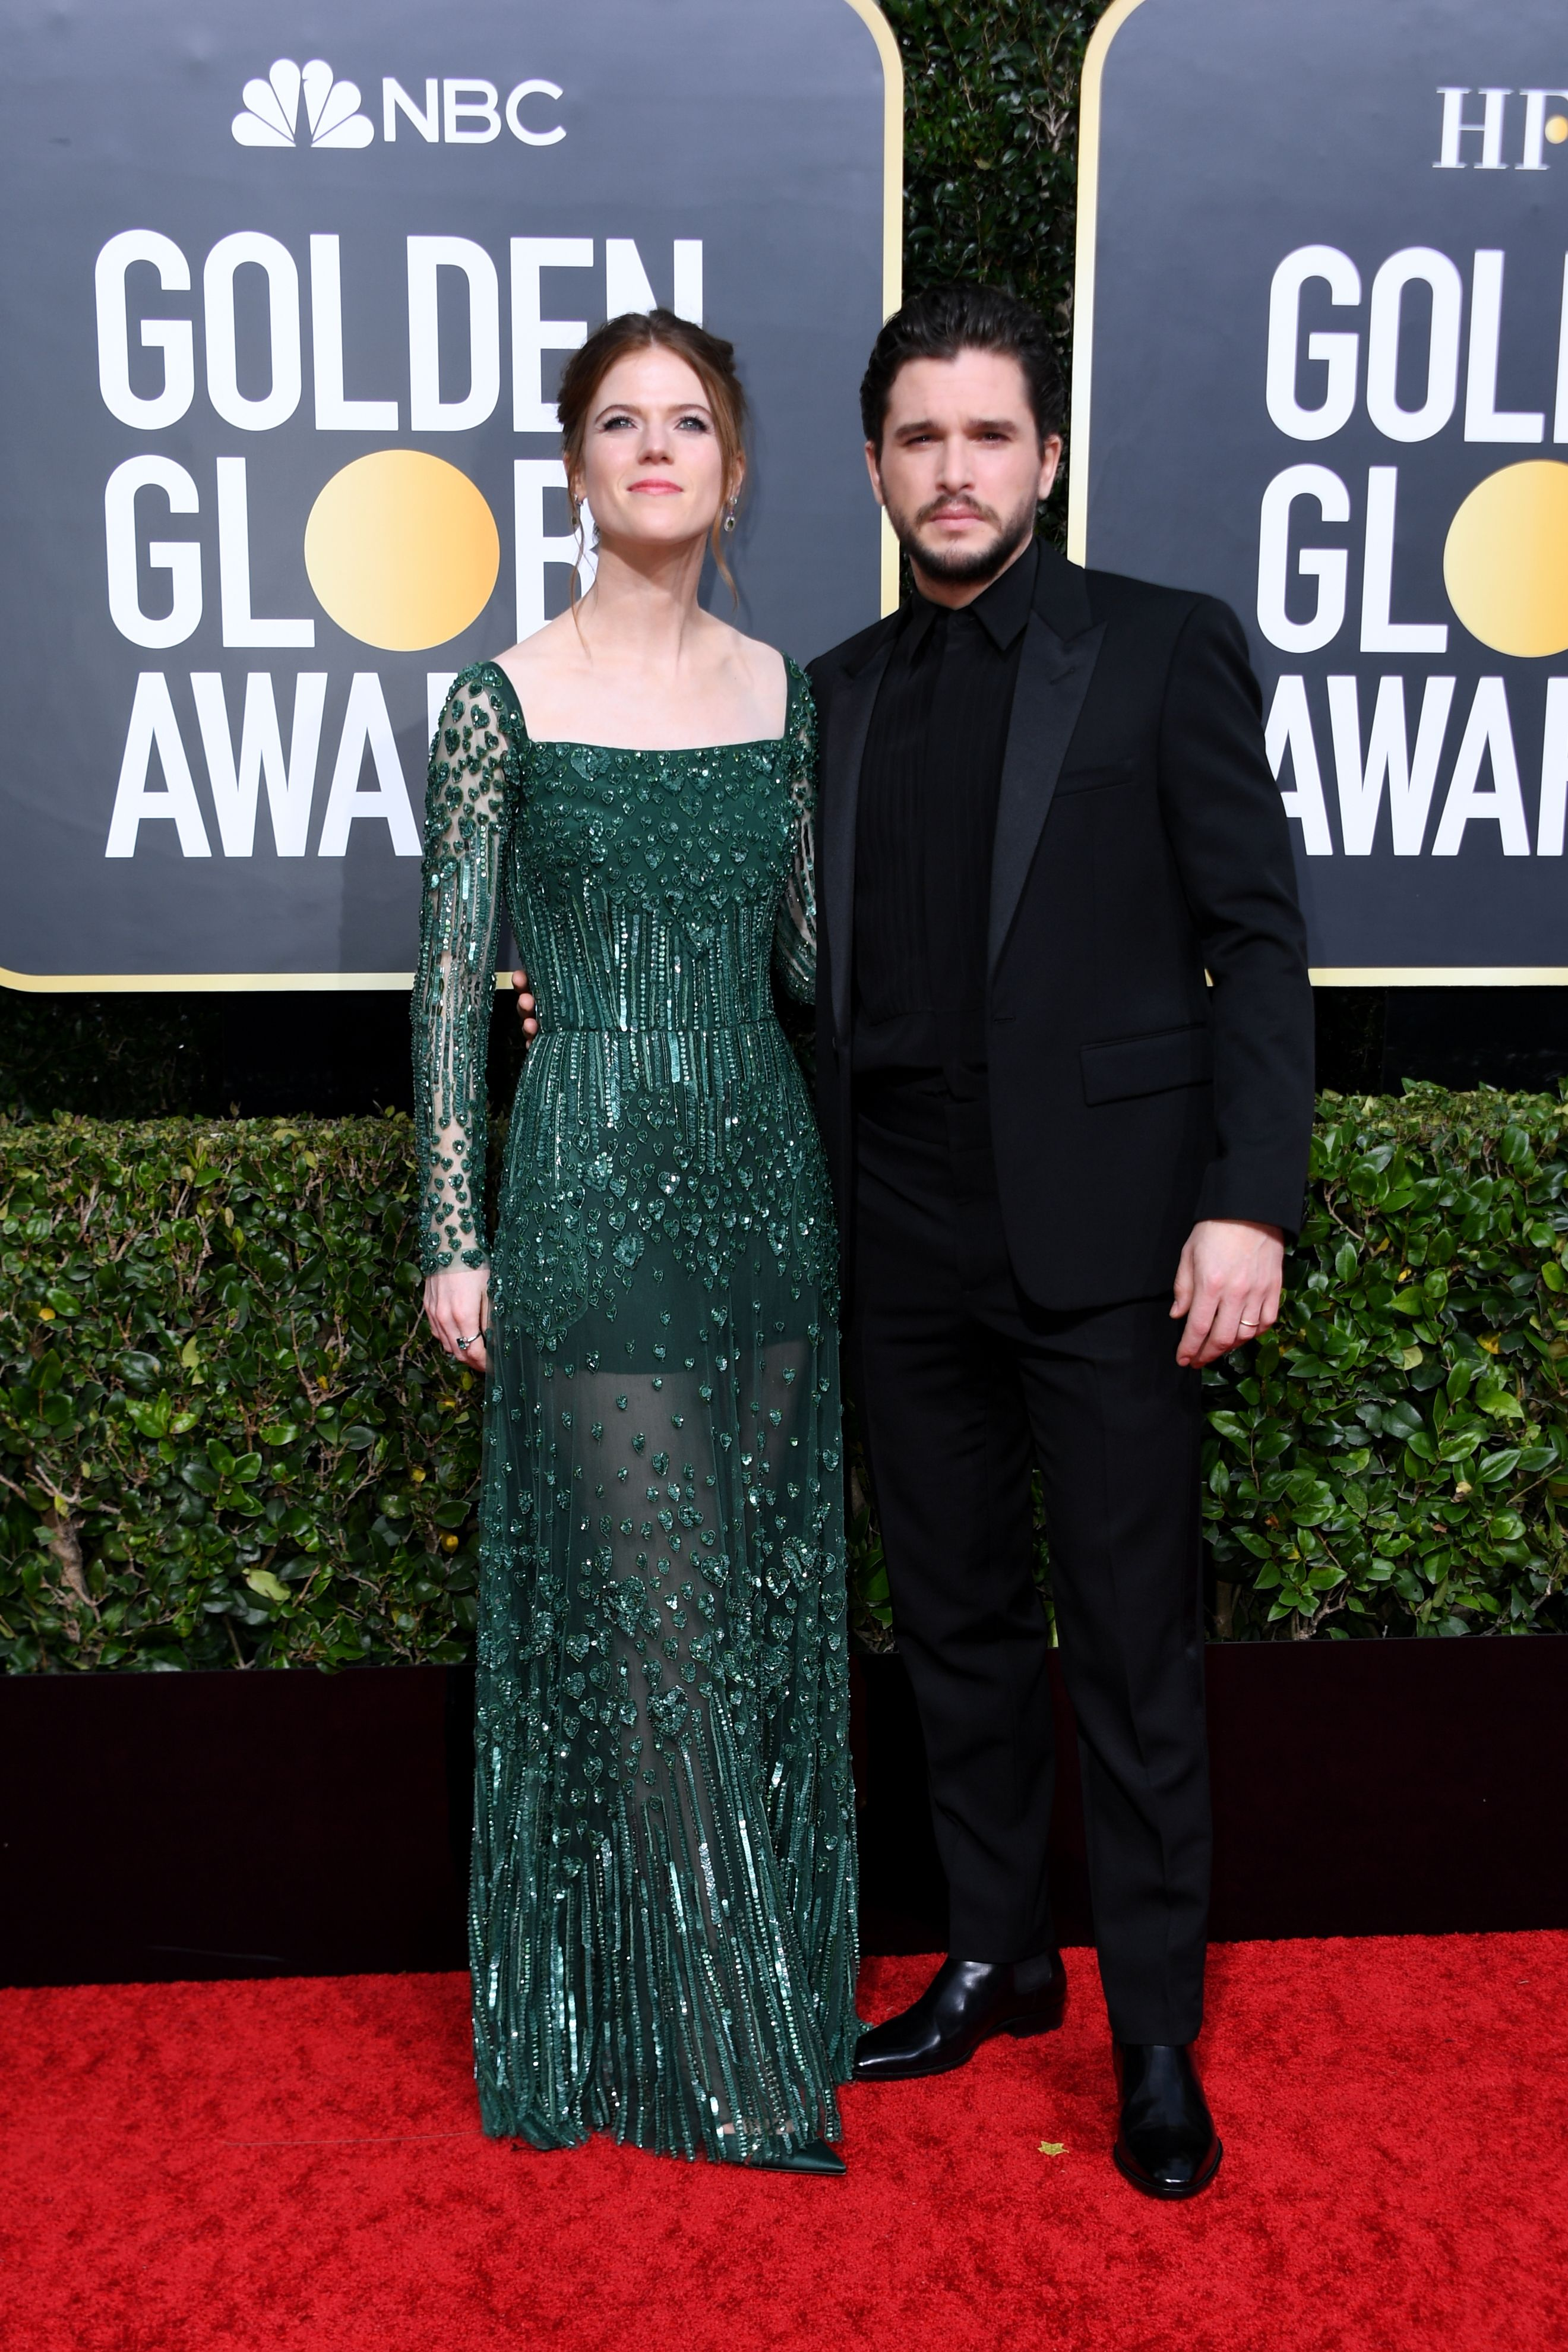 British actor Kit Harington (R) and wife actress Rose Leslie arrive for the 77th annual Golden Globe Awards on January 5, 2020, at The Beverly Hilton hotel in Beverly Hills, California. (Photo by VALERIE MACON / AFP) (Photo by VALERIE MACON/AFP via Getty Images)